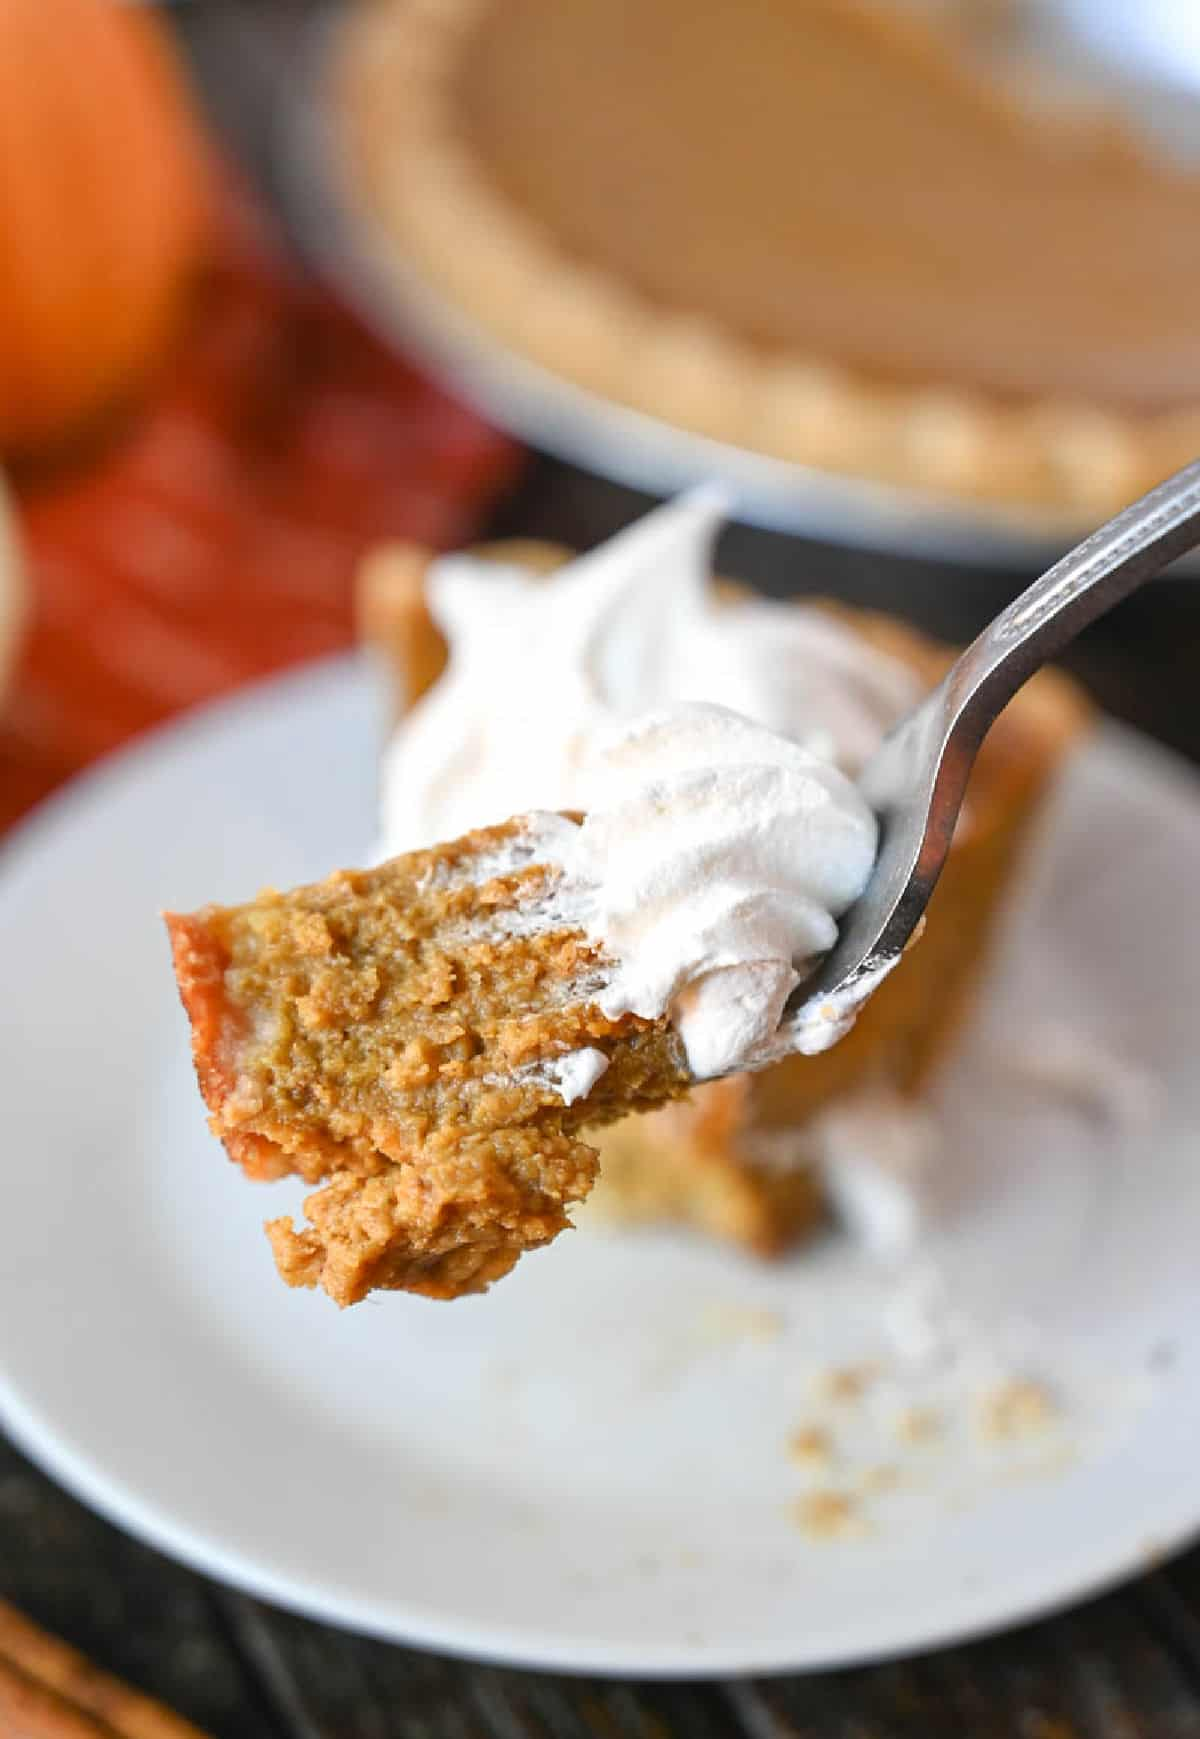 A bite of pumpkin pir with whipped cream on a fork.